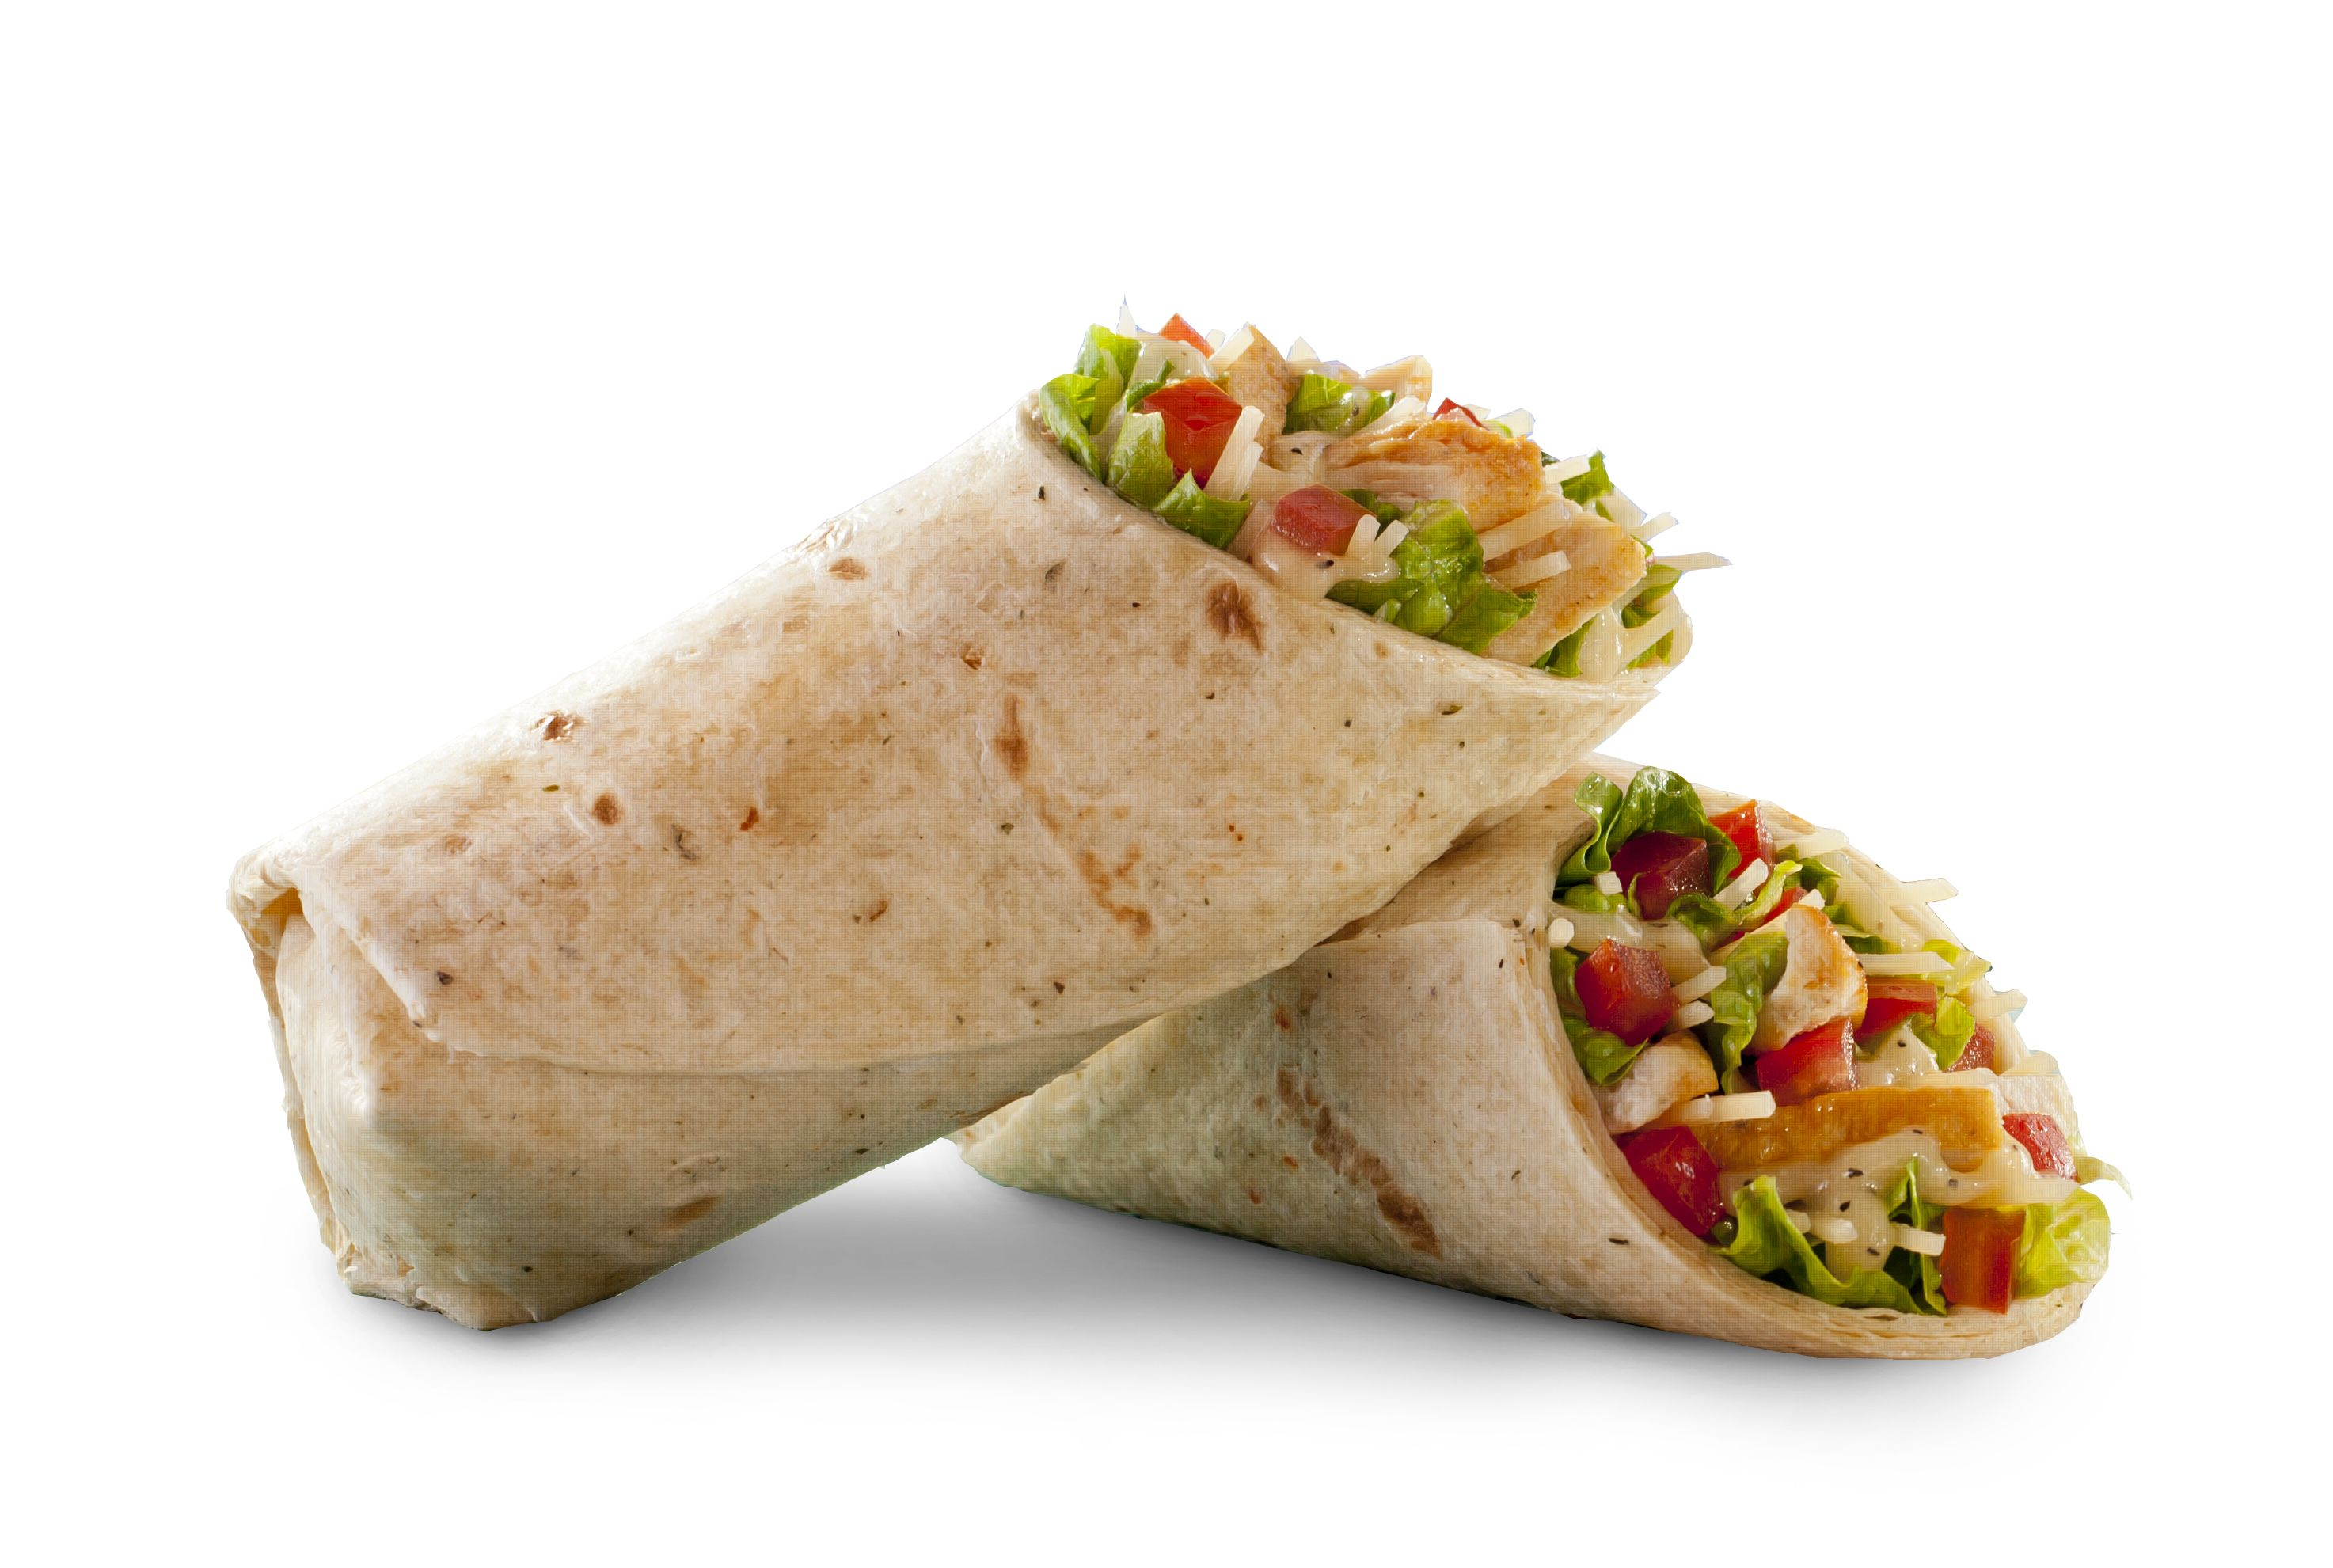 Tropical Smoothie Cafe Online Ordering Tropical Smoothie Cafe Healthy Recipes Tropical Smoothie